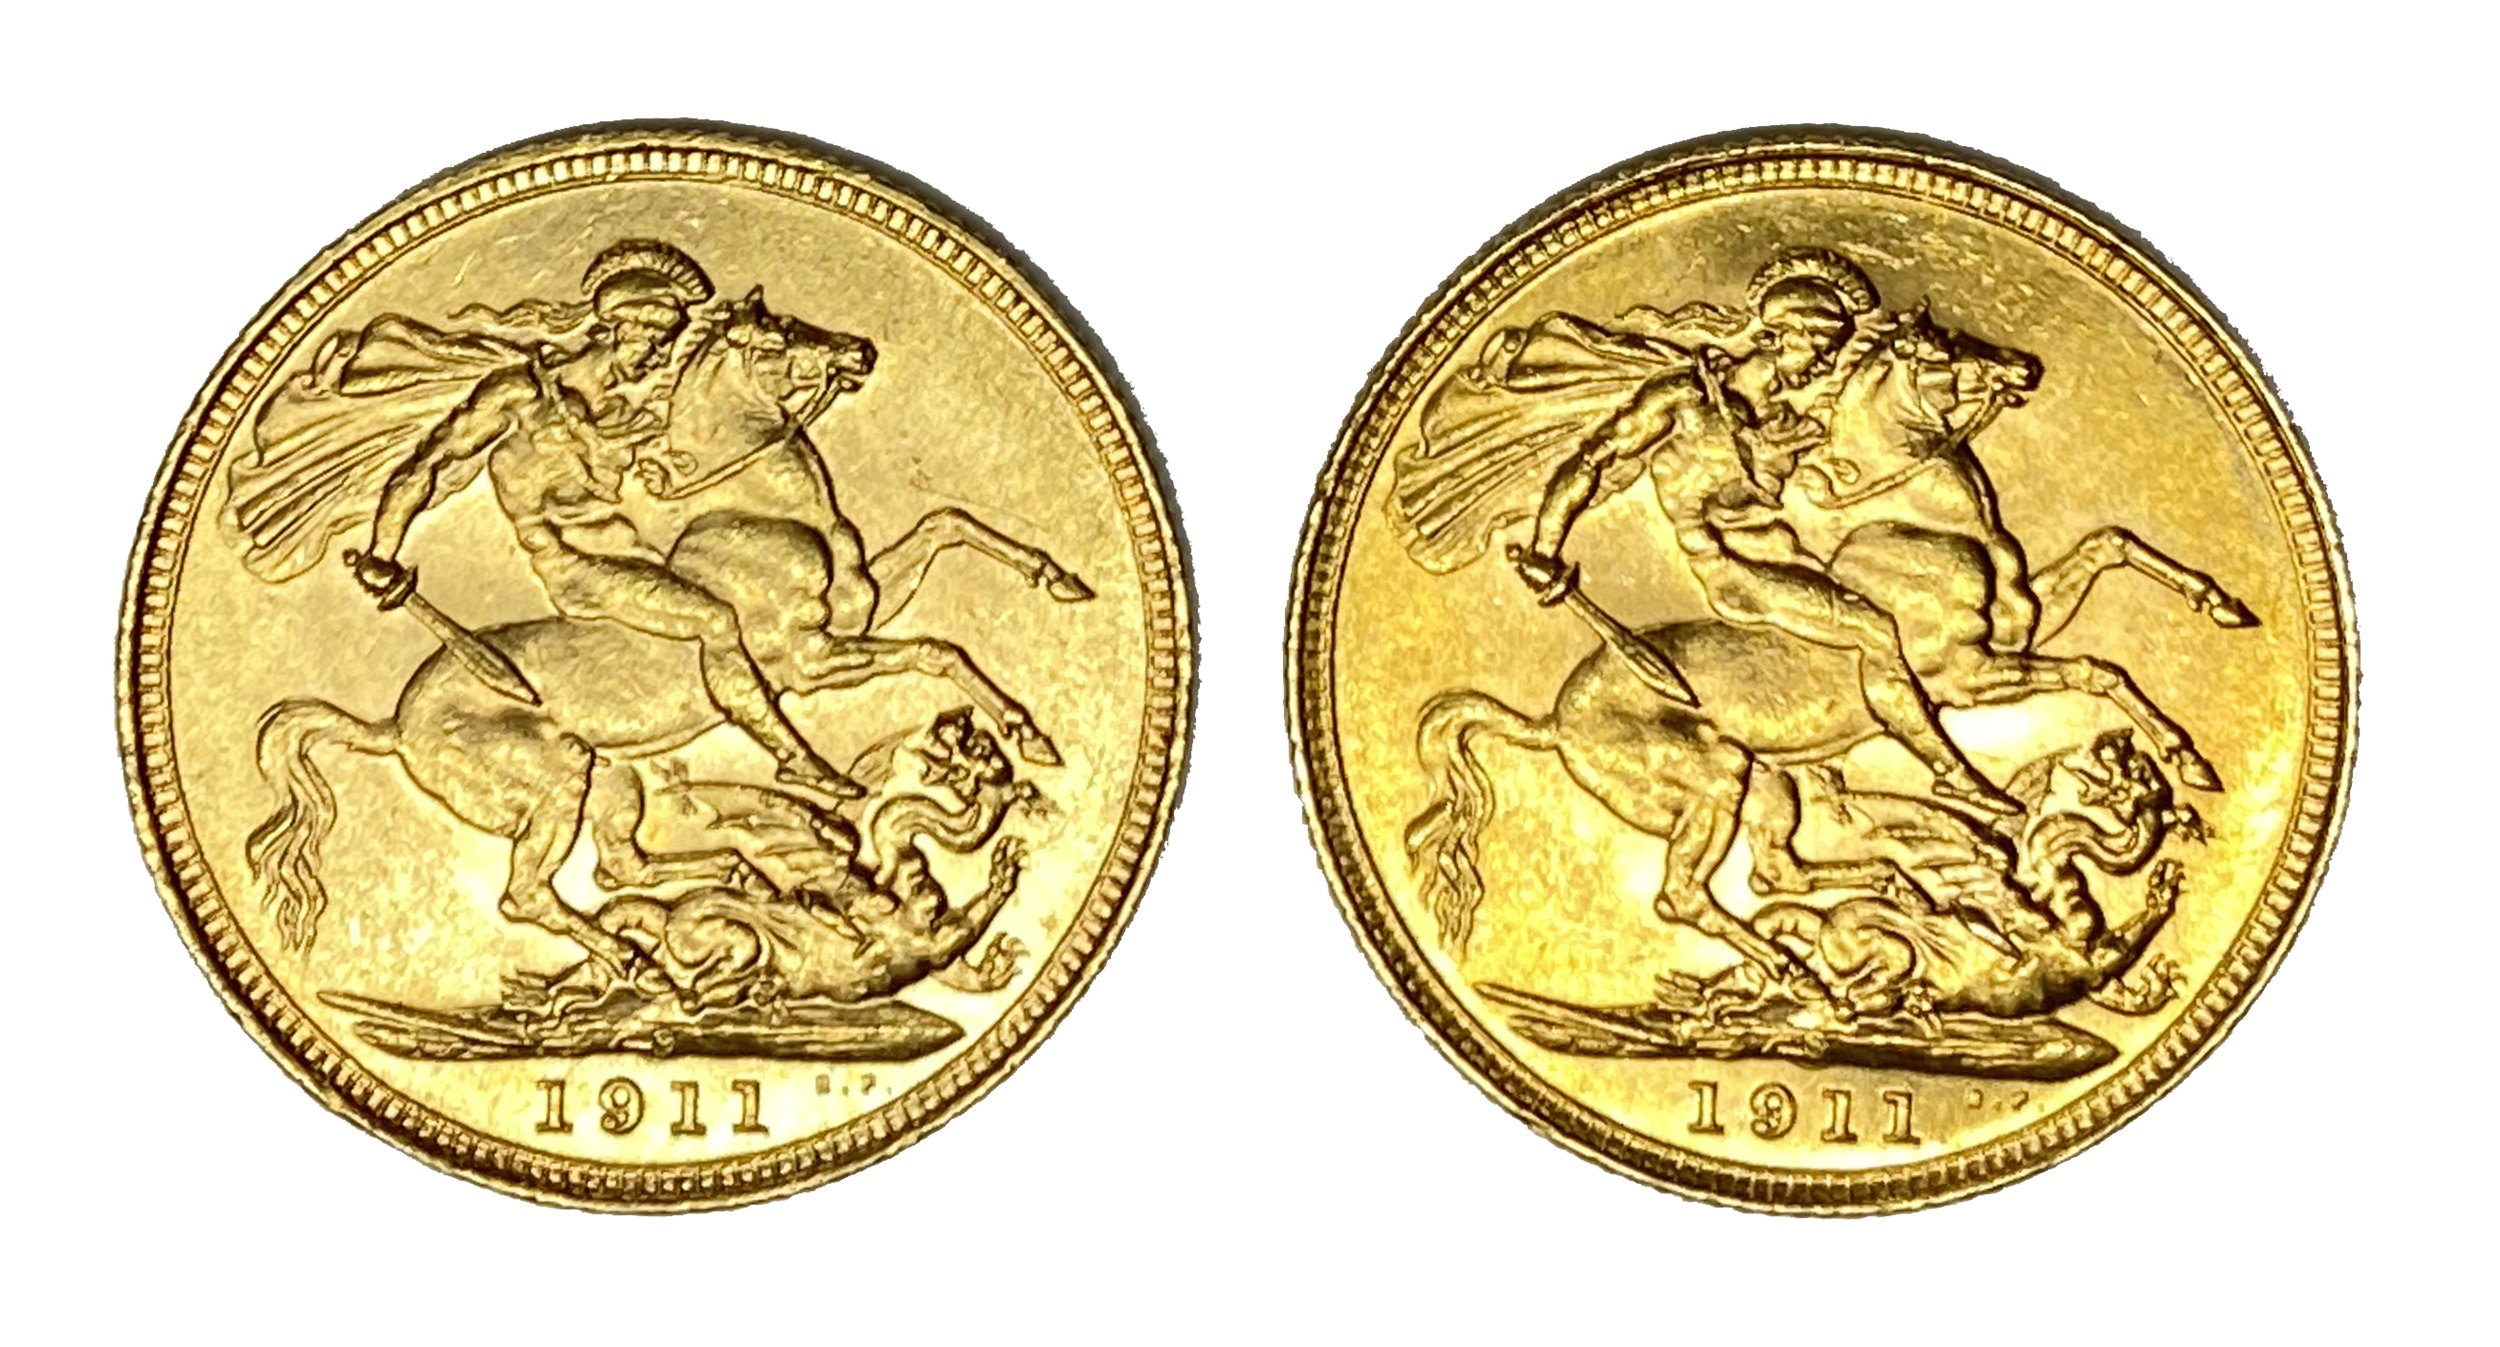 George V two gold Sovereign coins, 1911, Sydney mint - Image 2 of 2